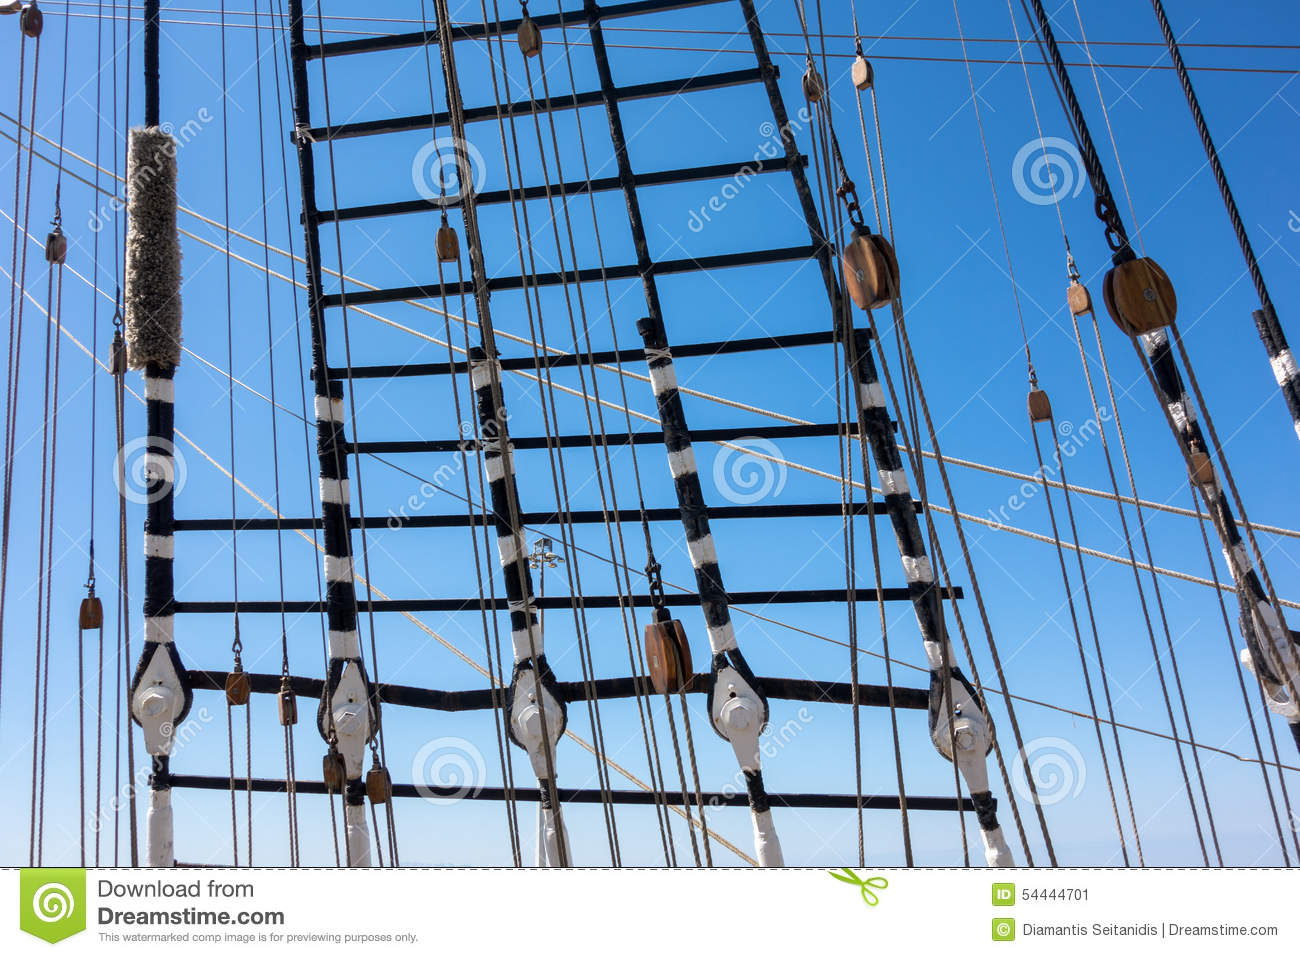 Marine Rope Ladder At Pirate Ship Stock Image - Image of shipping ... for Rope Ladder Ship  155fiz